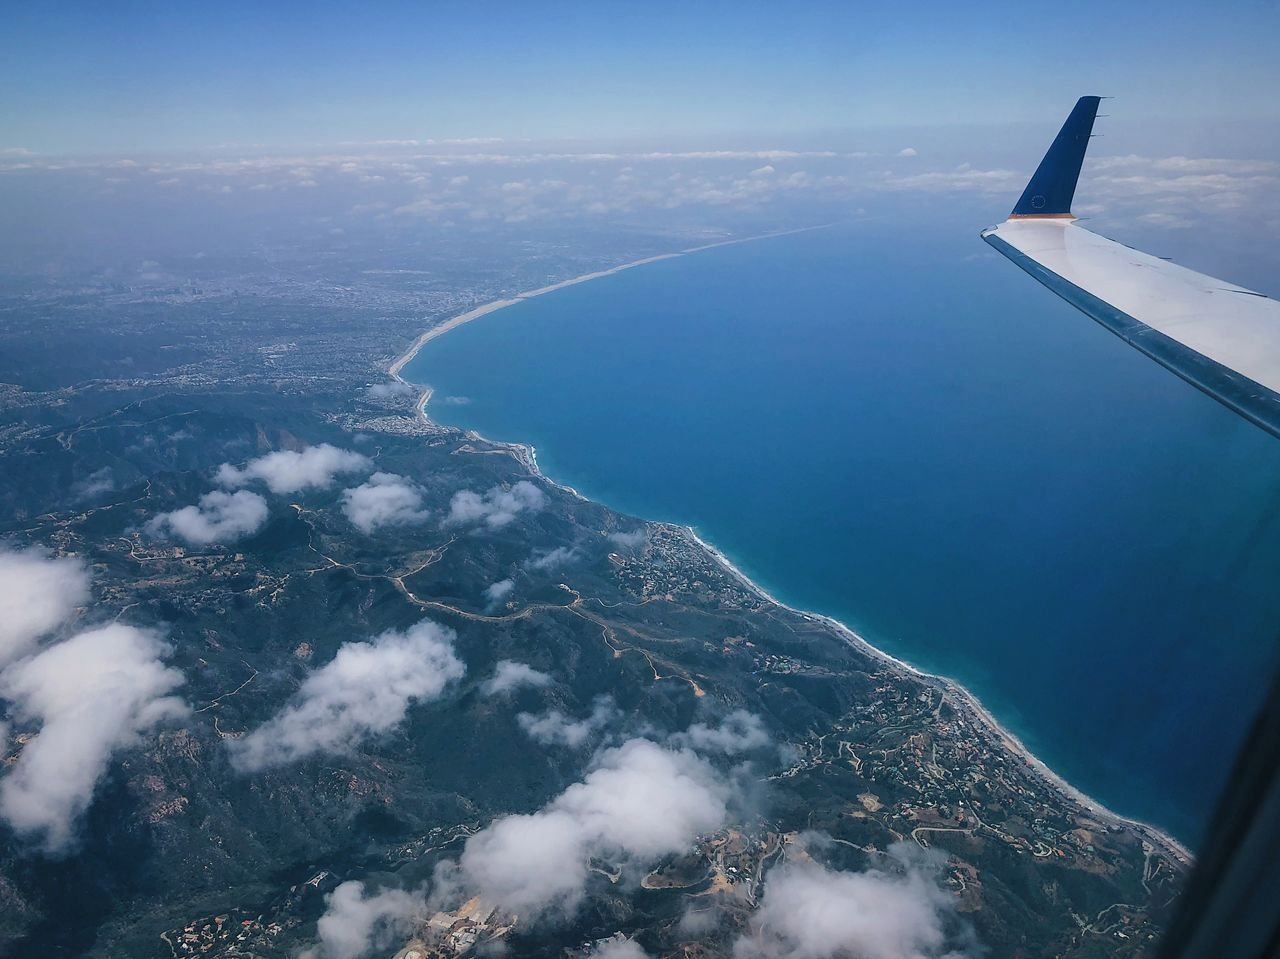 airplane, aerial view, air vehicle, scenics - nature, water, beauty in nature, flying, sea, mode of transportation, no people, transportation, aircraft wing, nature, day, travel, sky, cloud - sky, tranquil scene, mid-air, outdoors